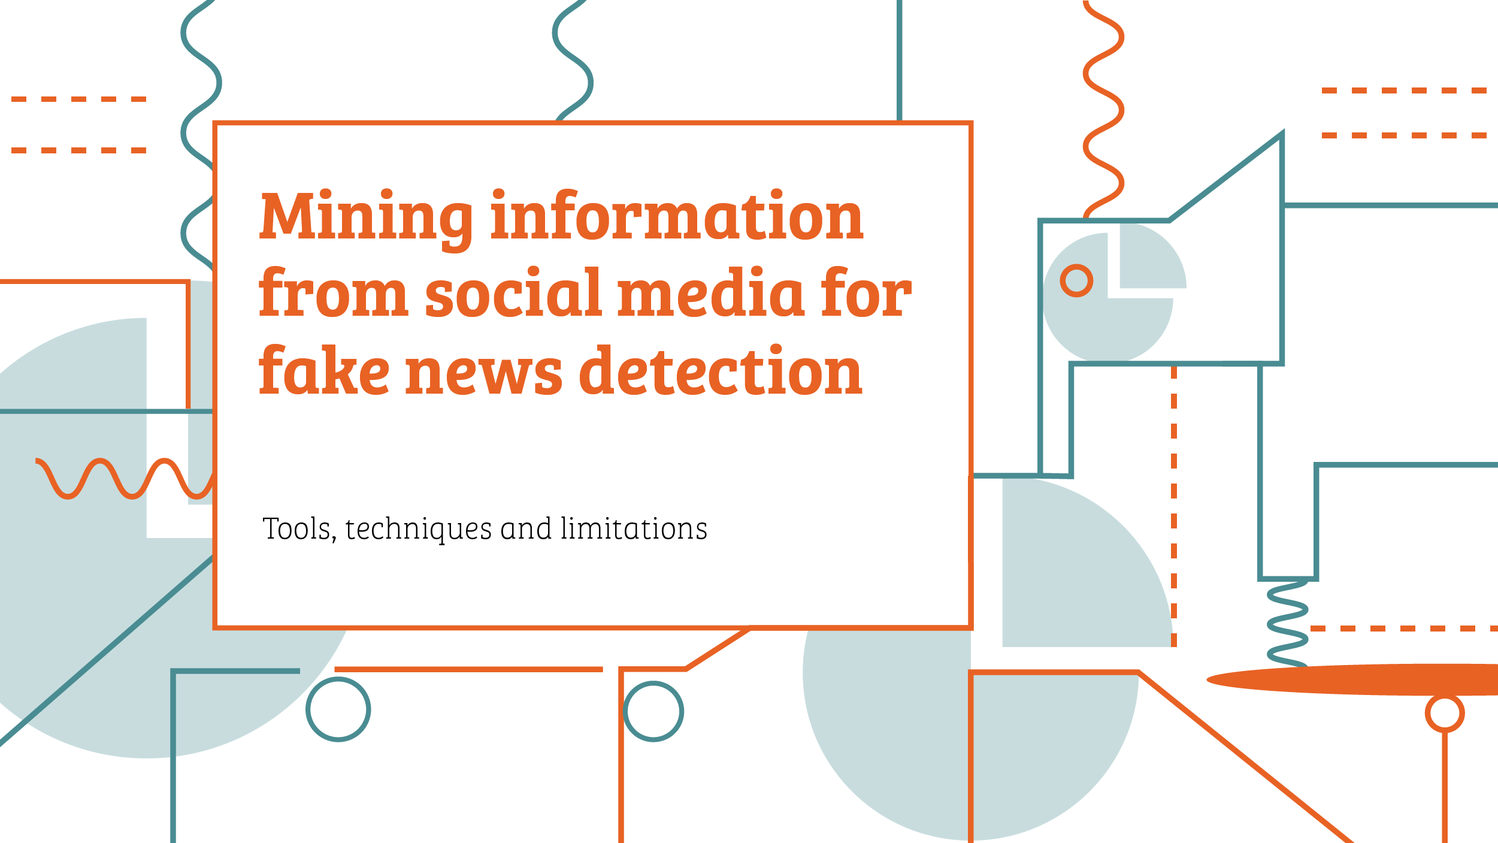 Mining information from social media for fake news detection